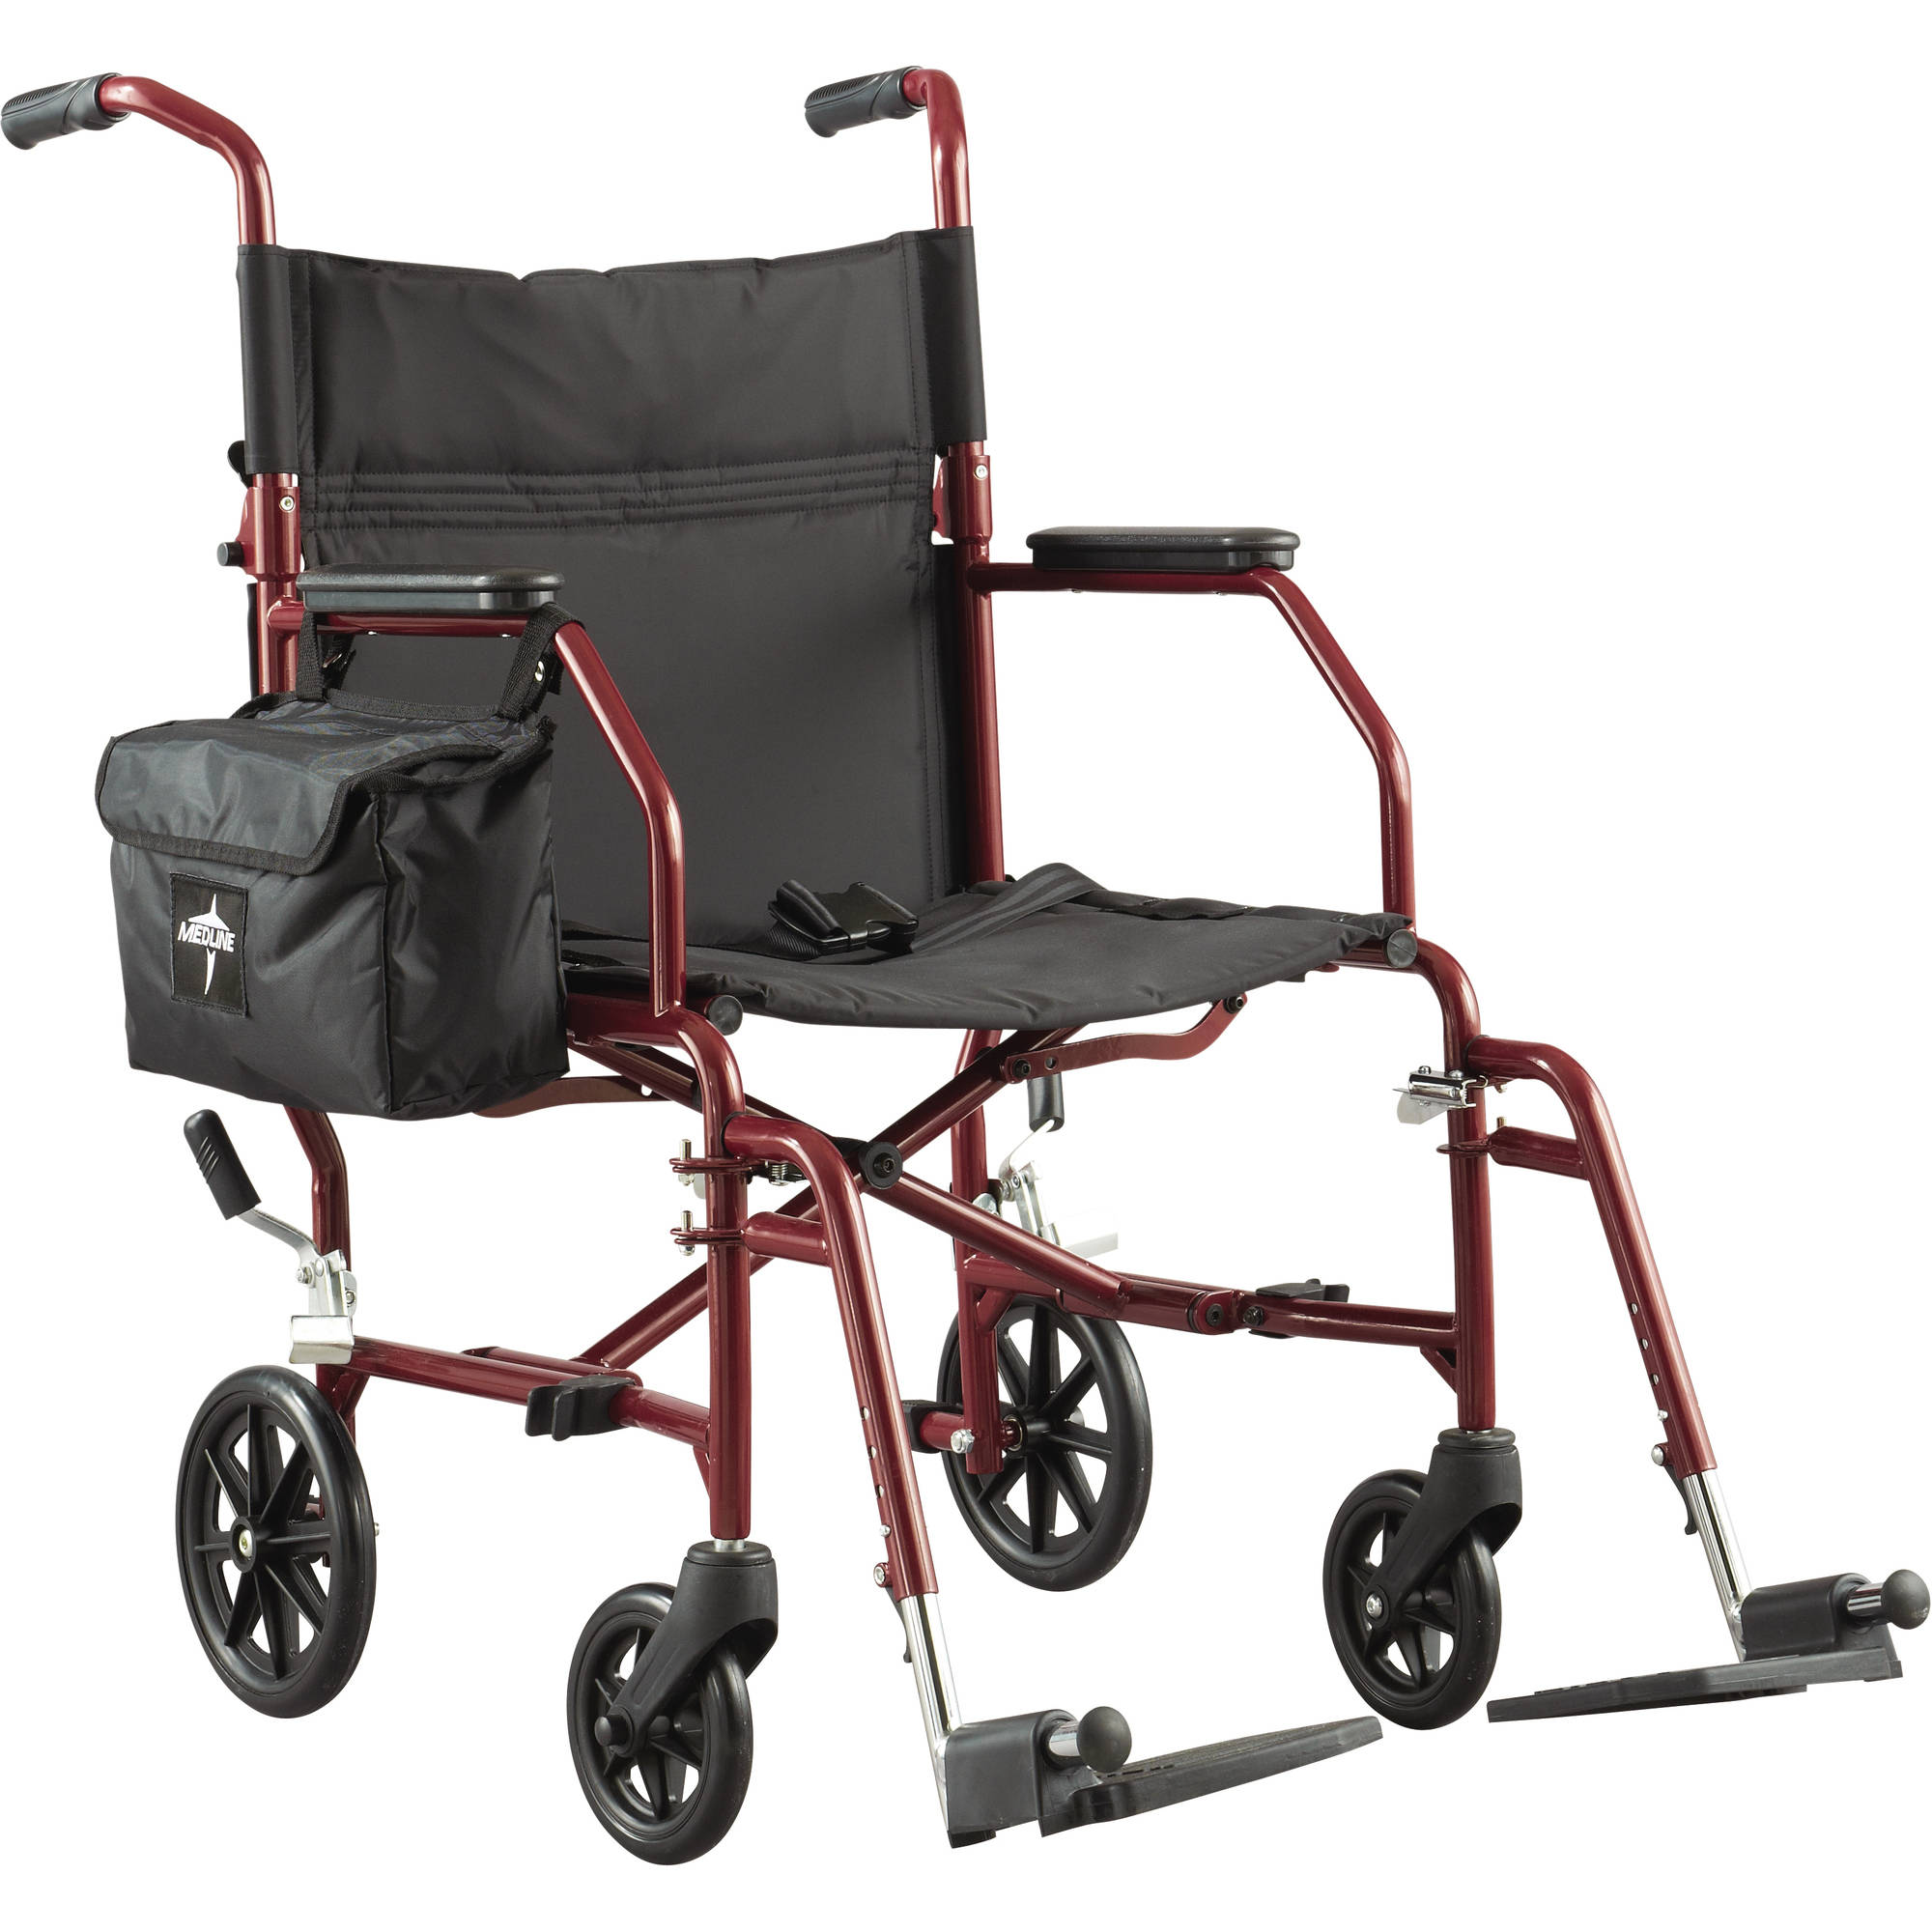 "Medline Basic Steel Transport Wheelchair with 19"" Wide Seat, Burgundy"